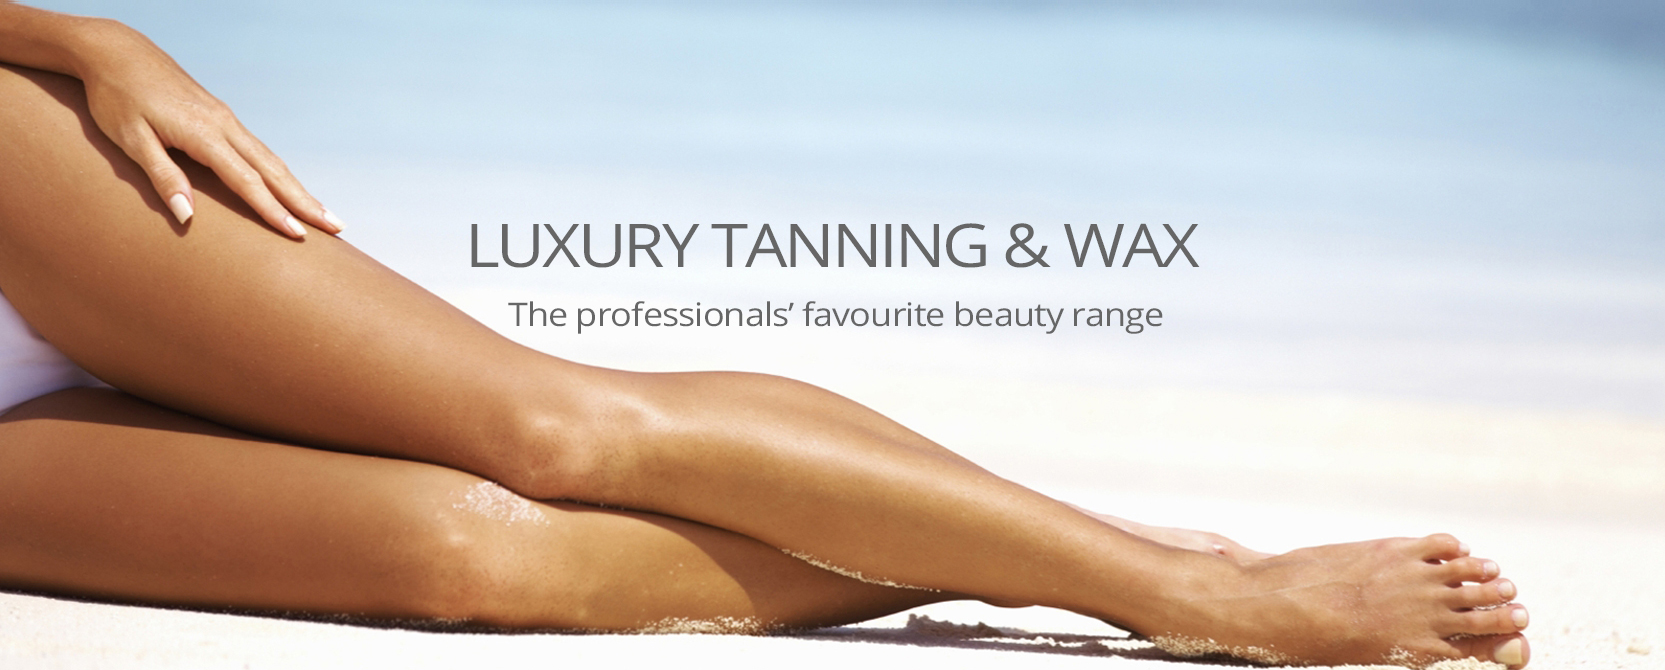 Sienna-X Luxury Tanning & Wax